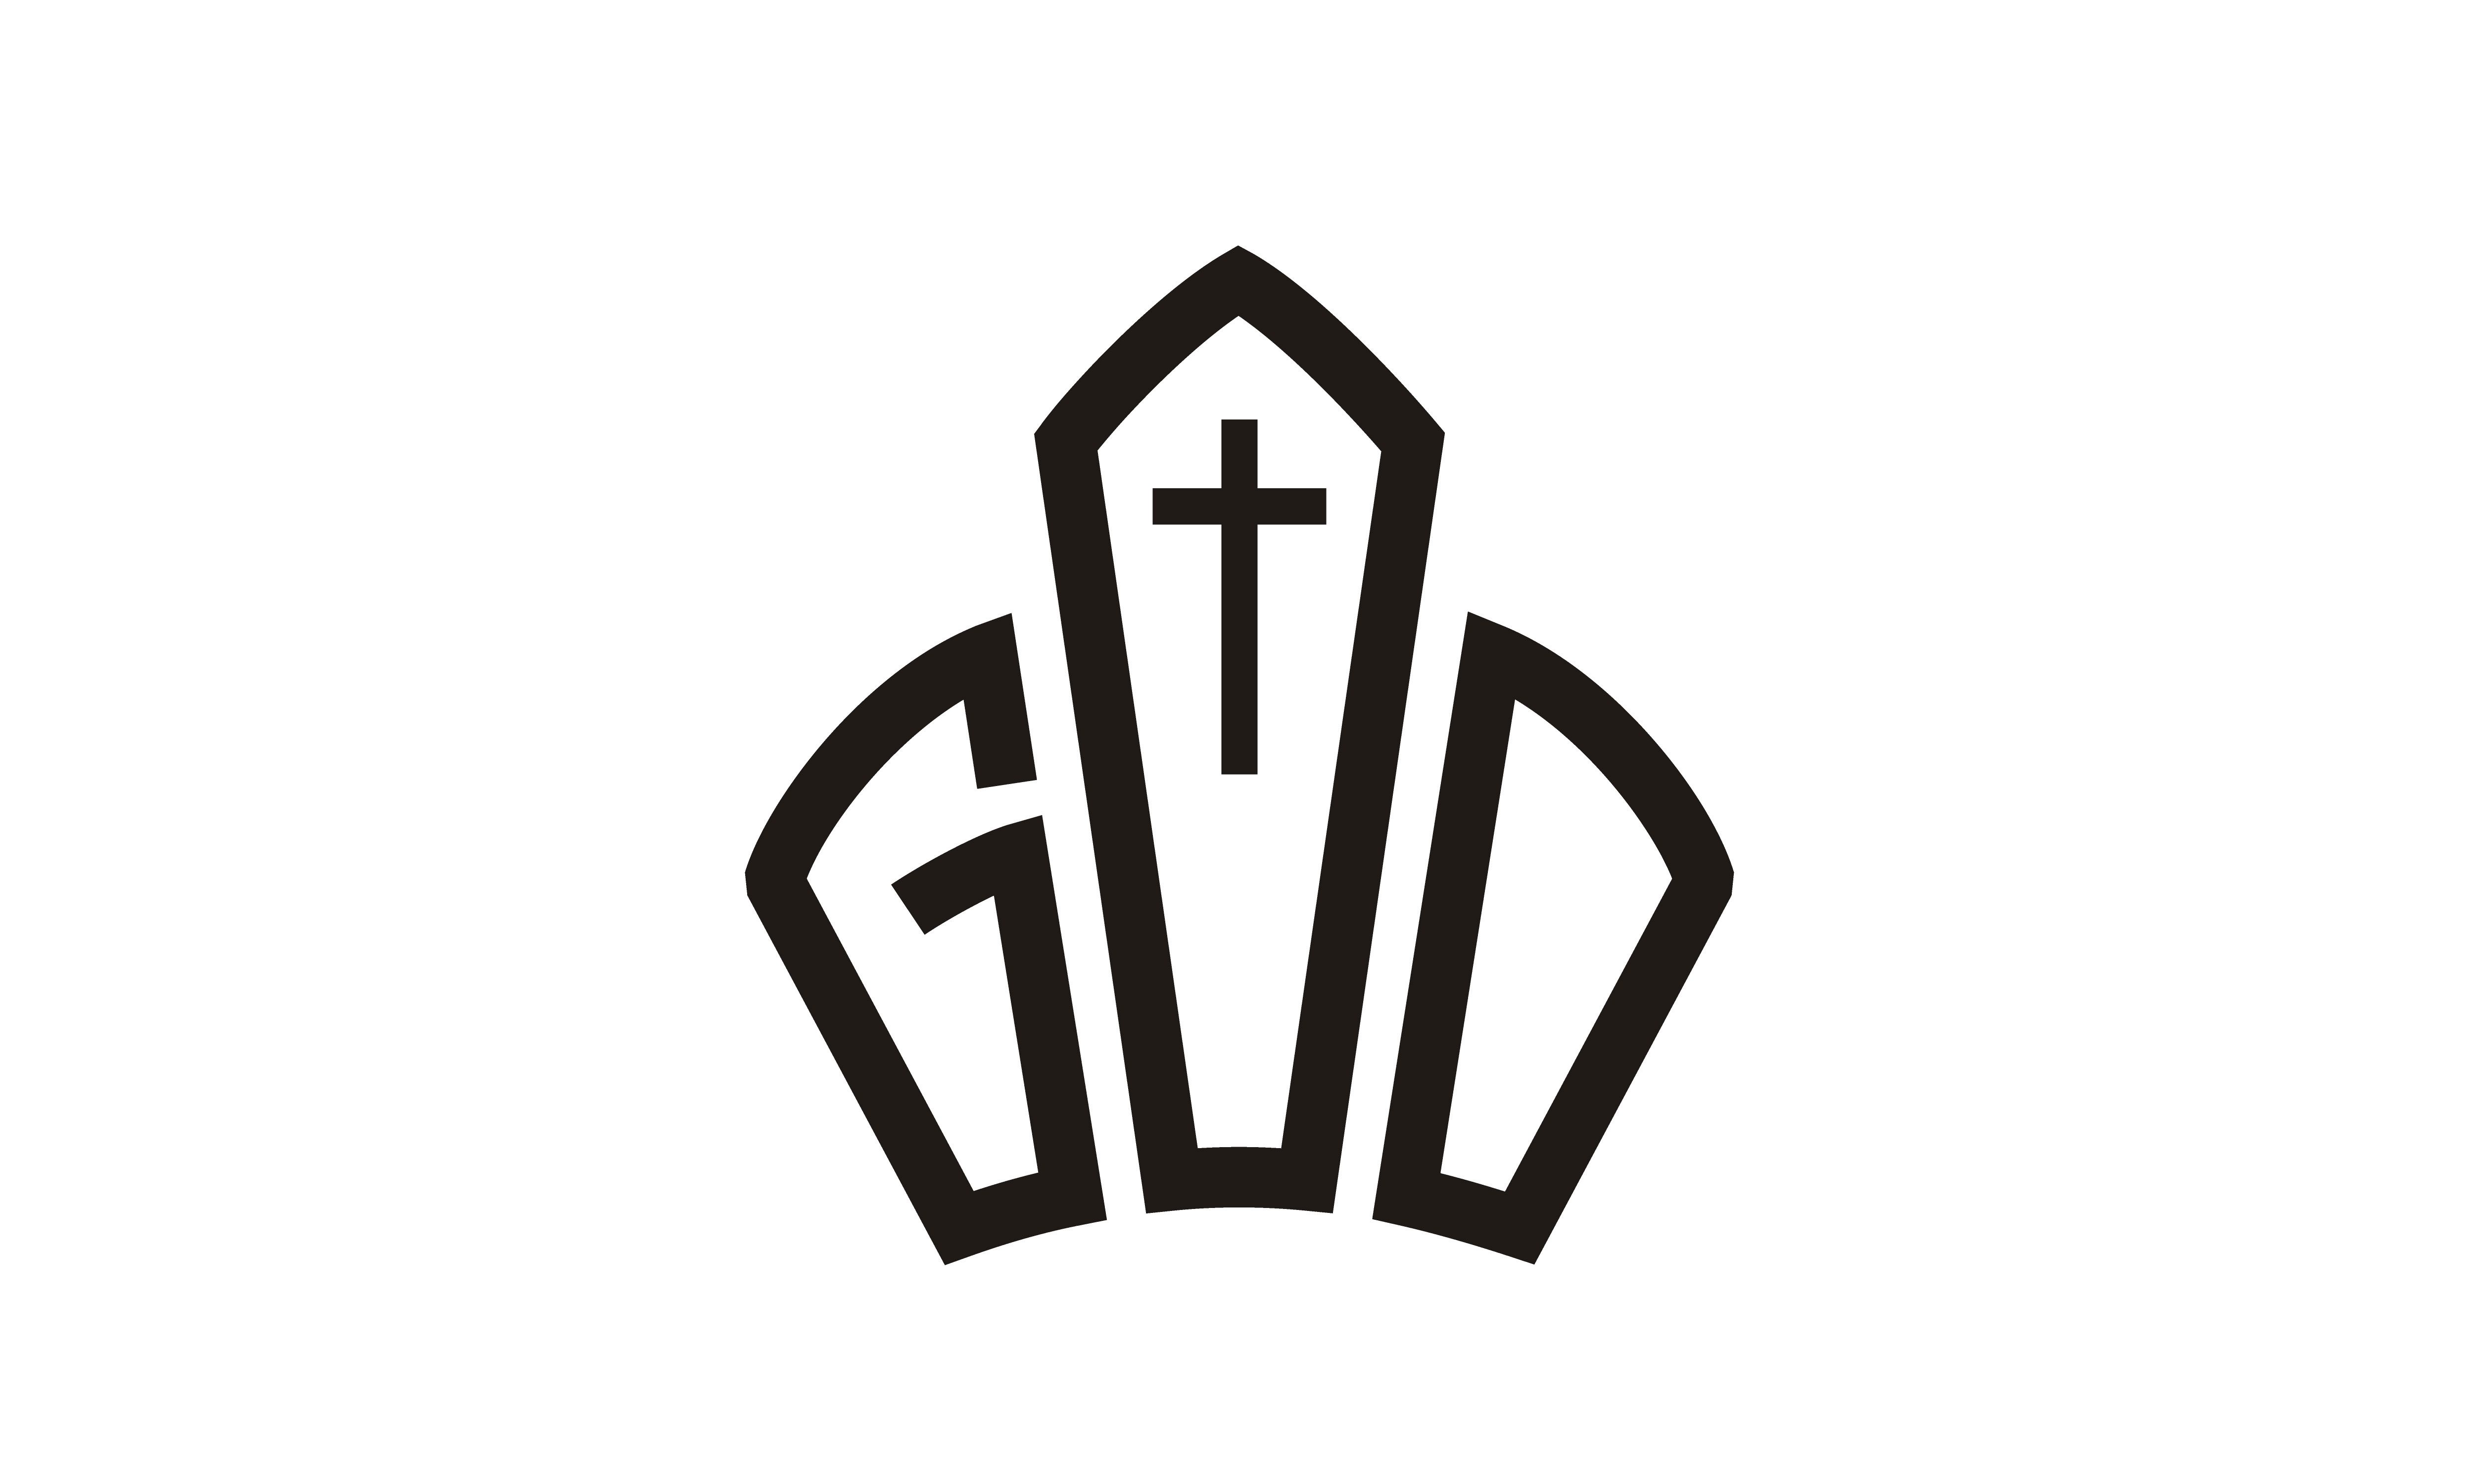 Download Free God Jesus Crown King Lord Church Logo Graphic By Enola99d for Cricut Explore, Silhouette and other cutting machines.